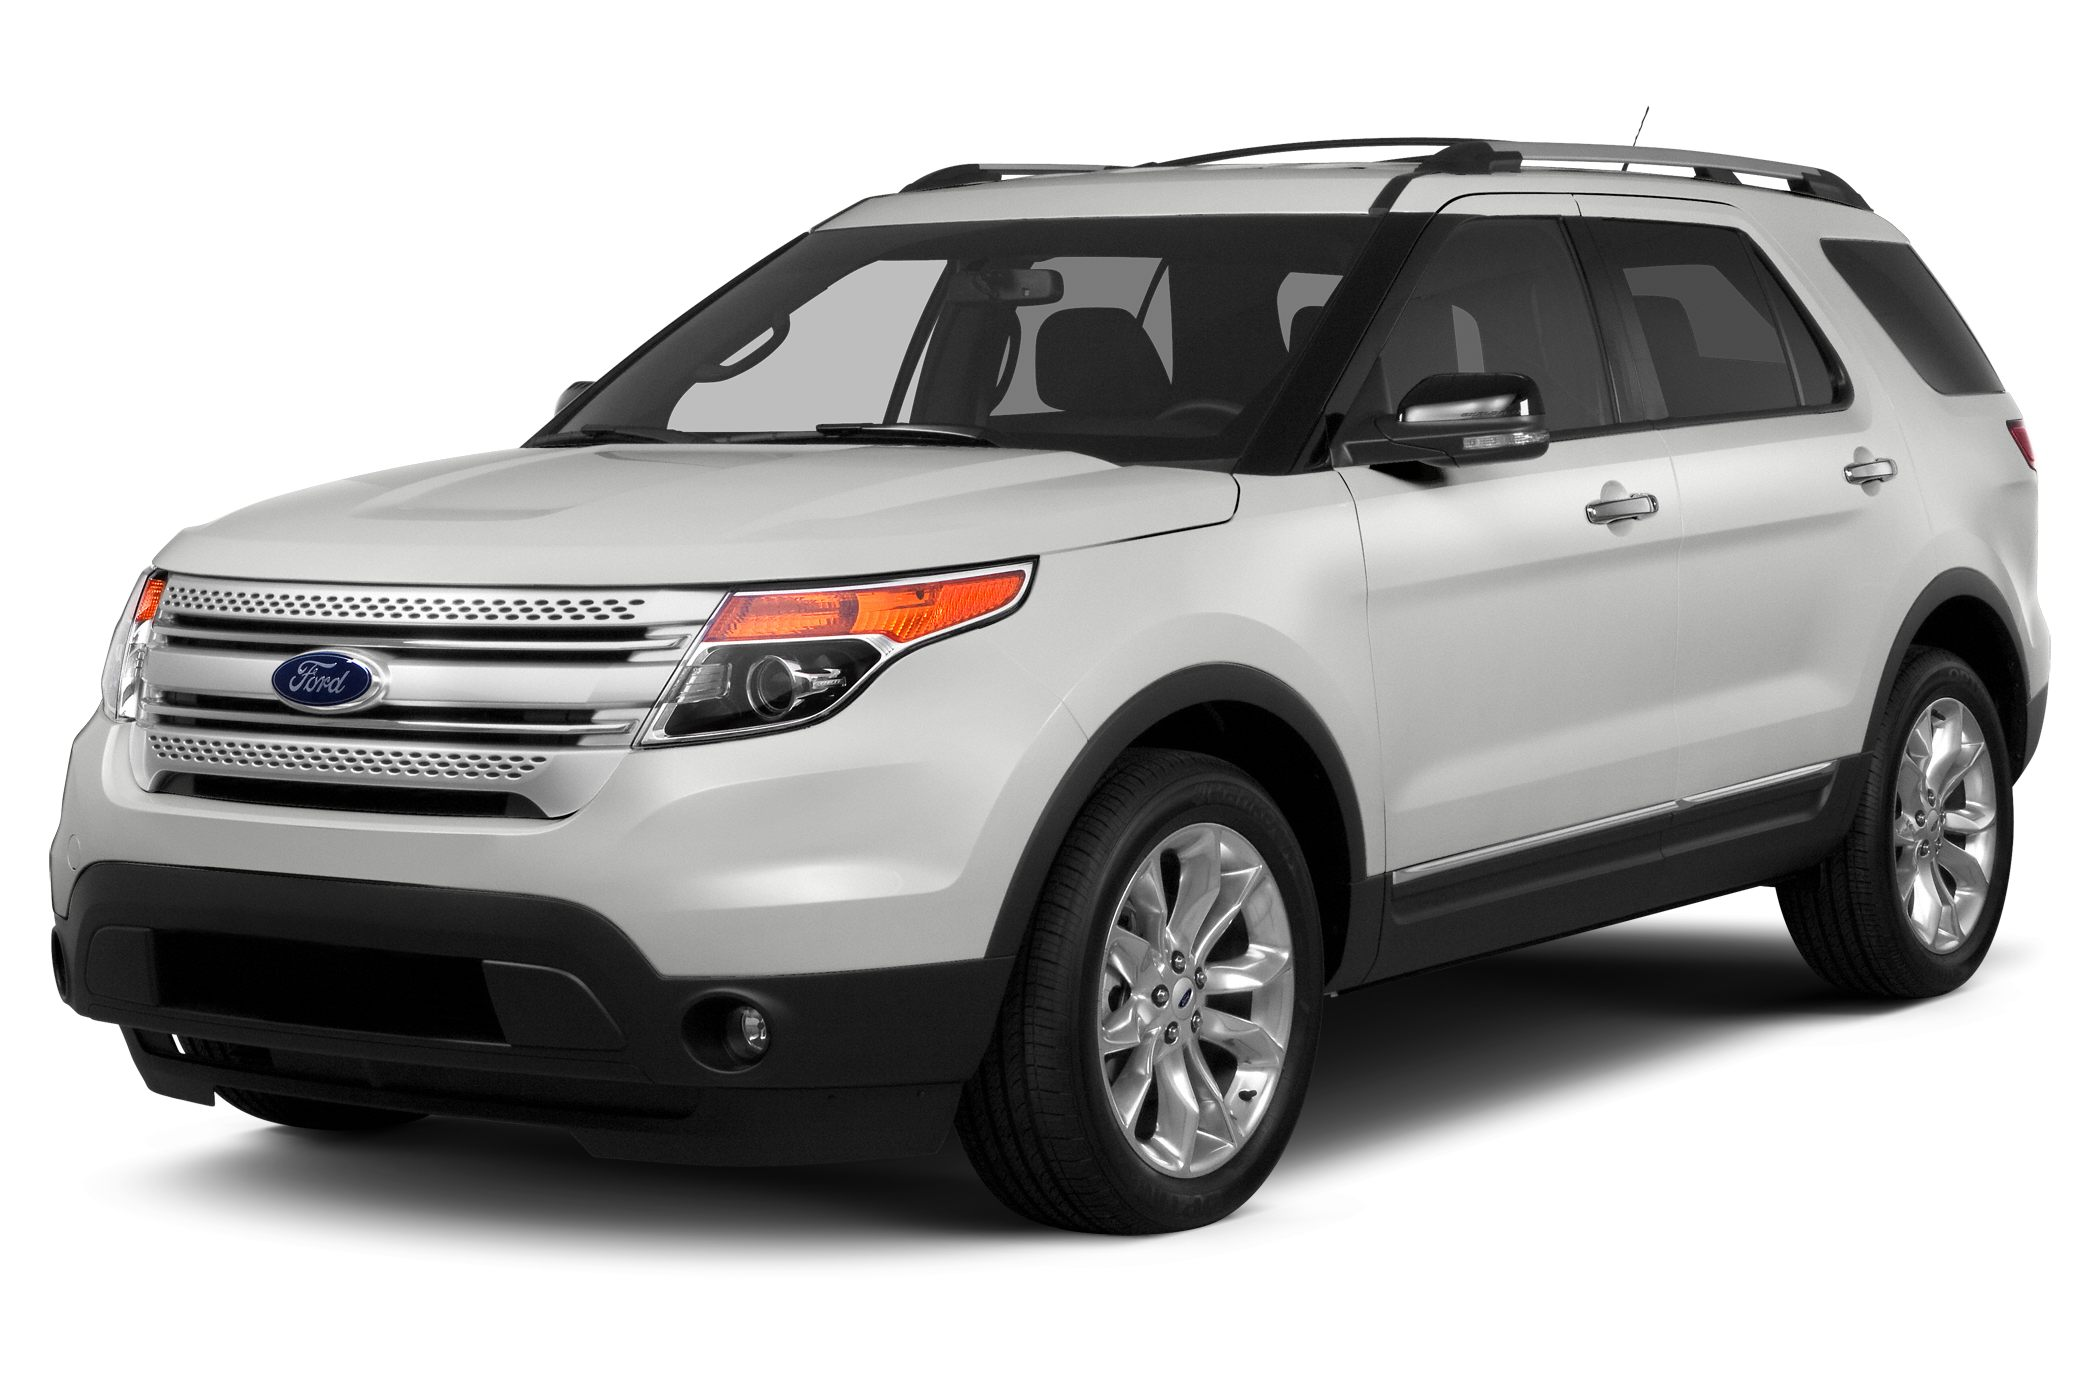 2015 Ford Explorer XLT SUV for sale in Monroe for $41,105 with 1 miles